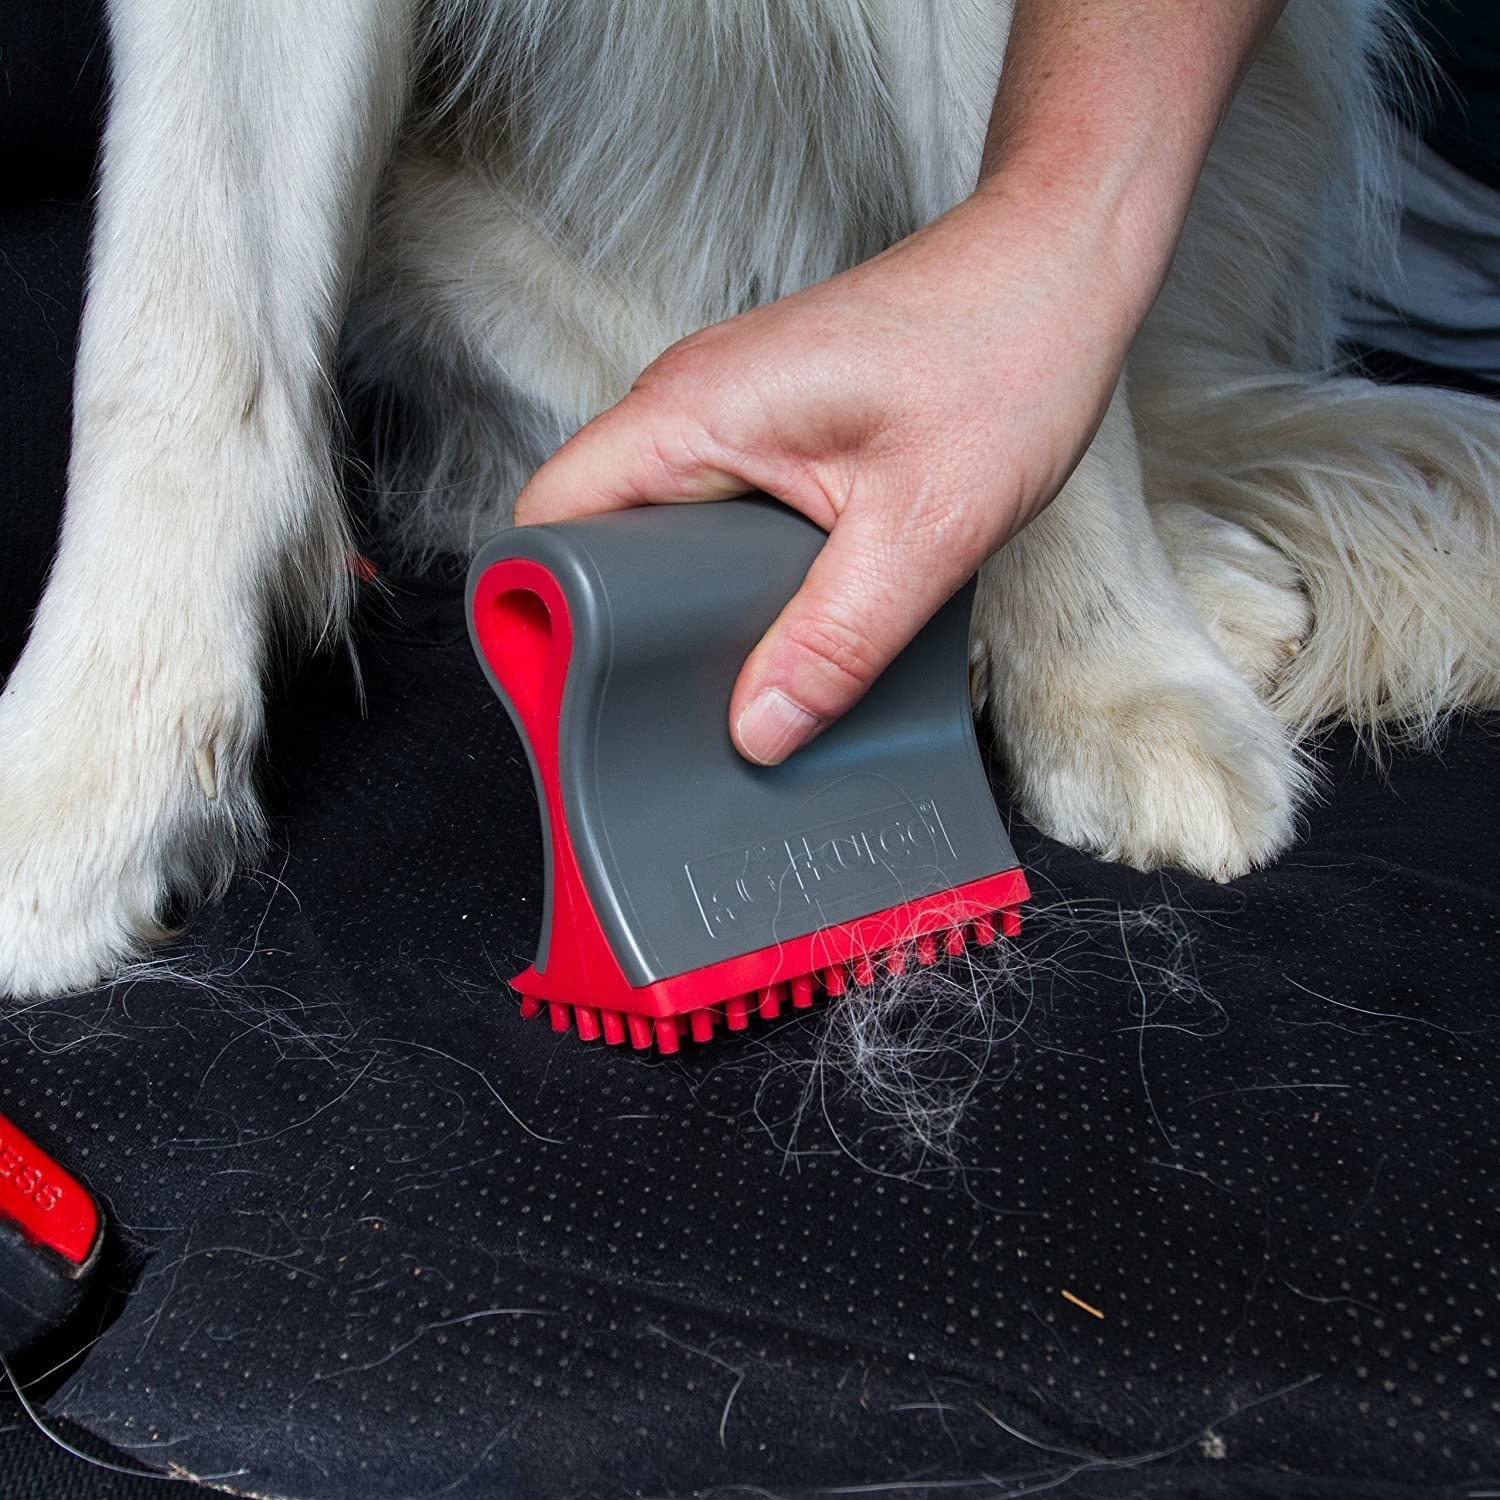 The red and gray pet hair remover